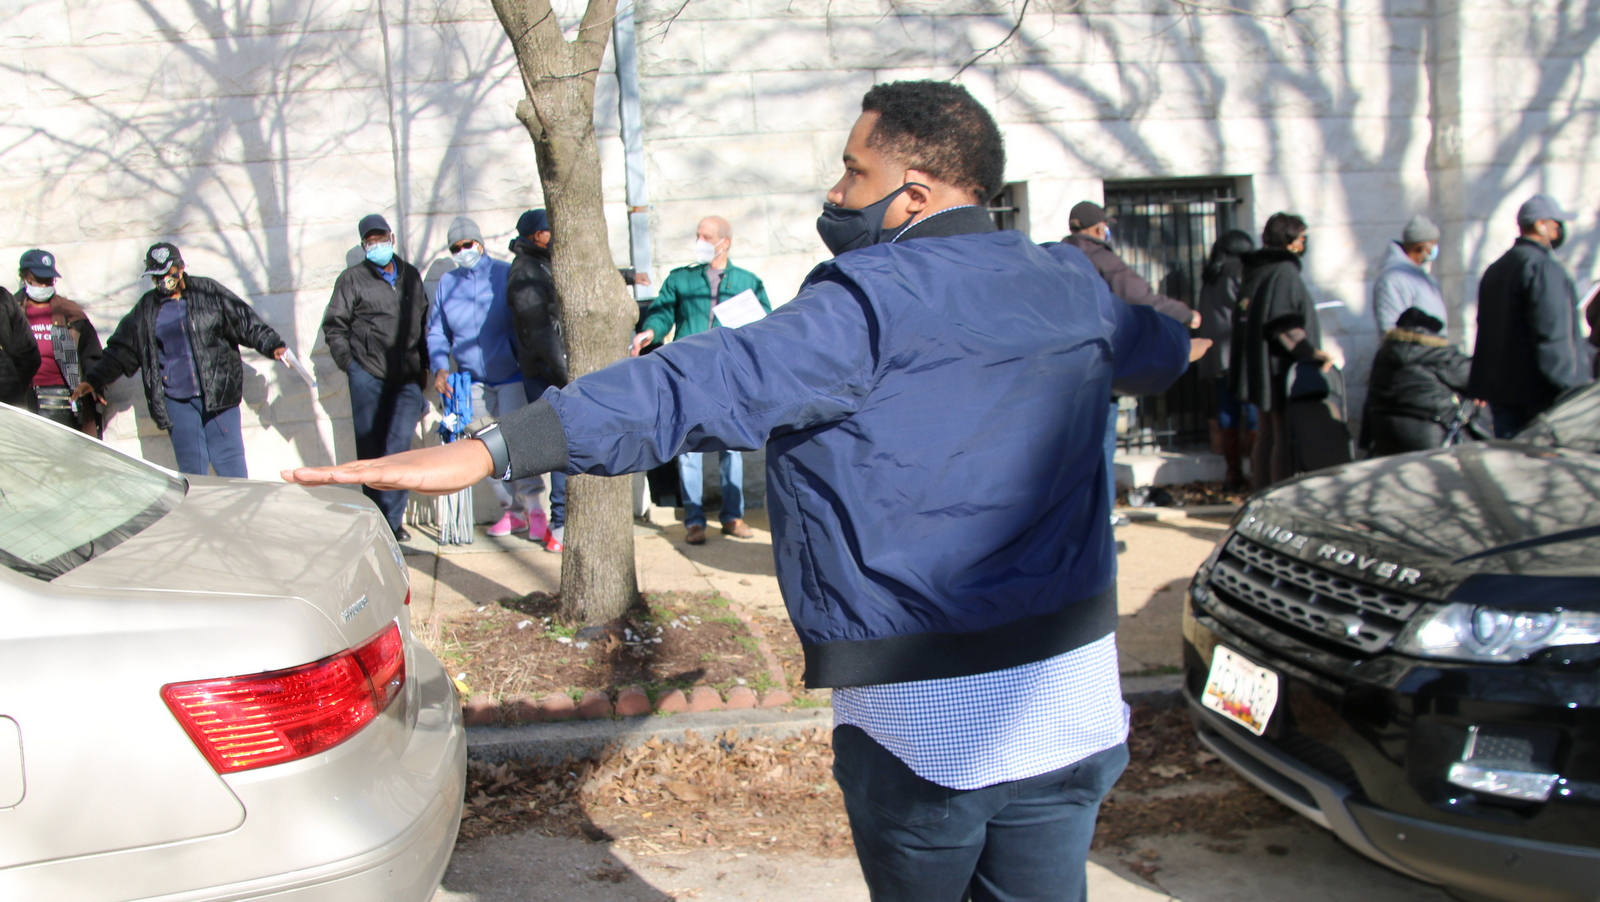 An organizer reminds people lined up to be vaccinated outside the Masonic Temple on Eutaw Place to maintain six-foot social distance. (Fern Shen)